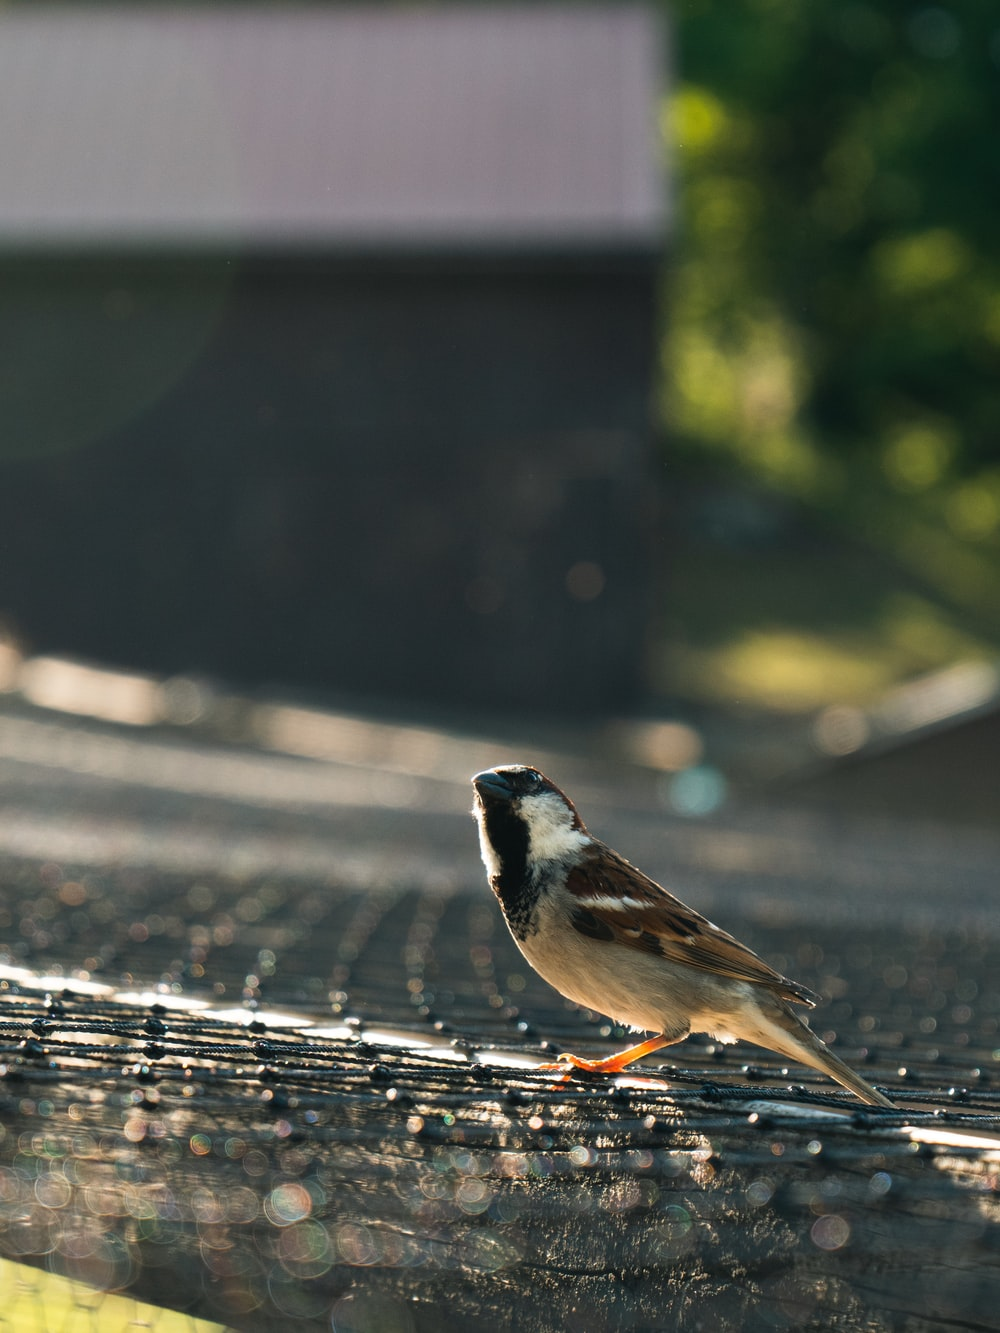 macro photography of white and brown b ird on gray surface